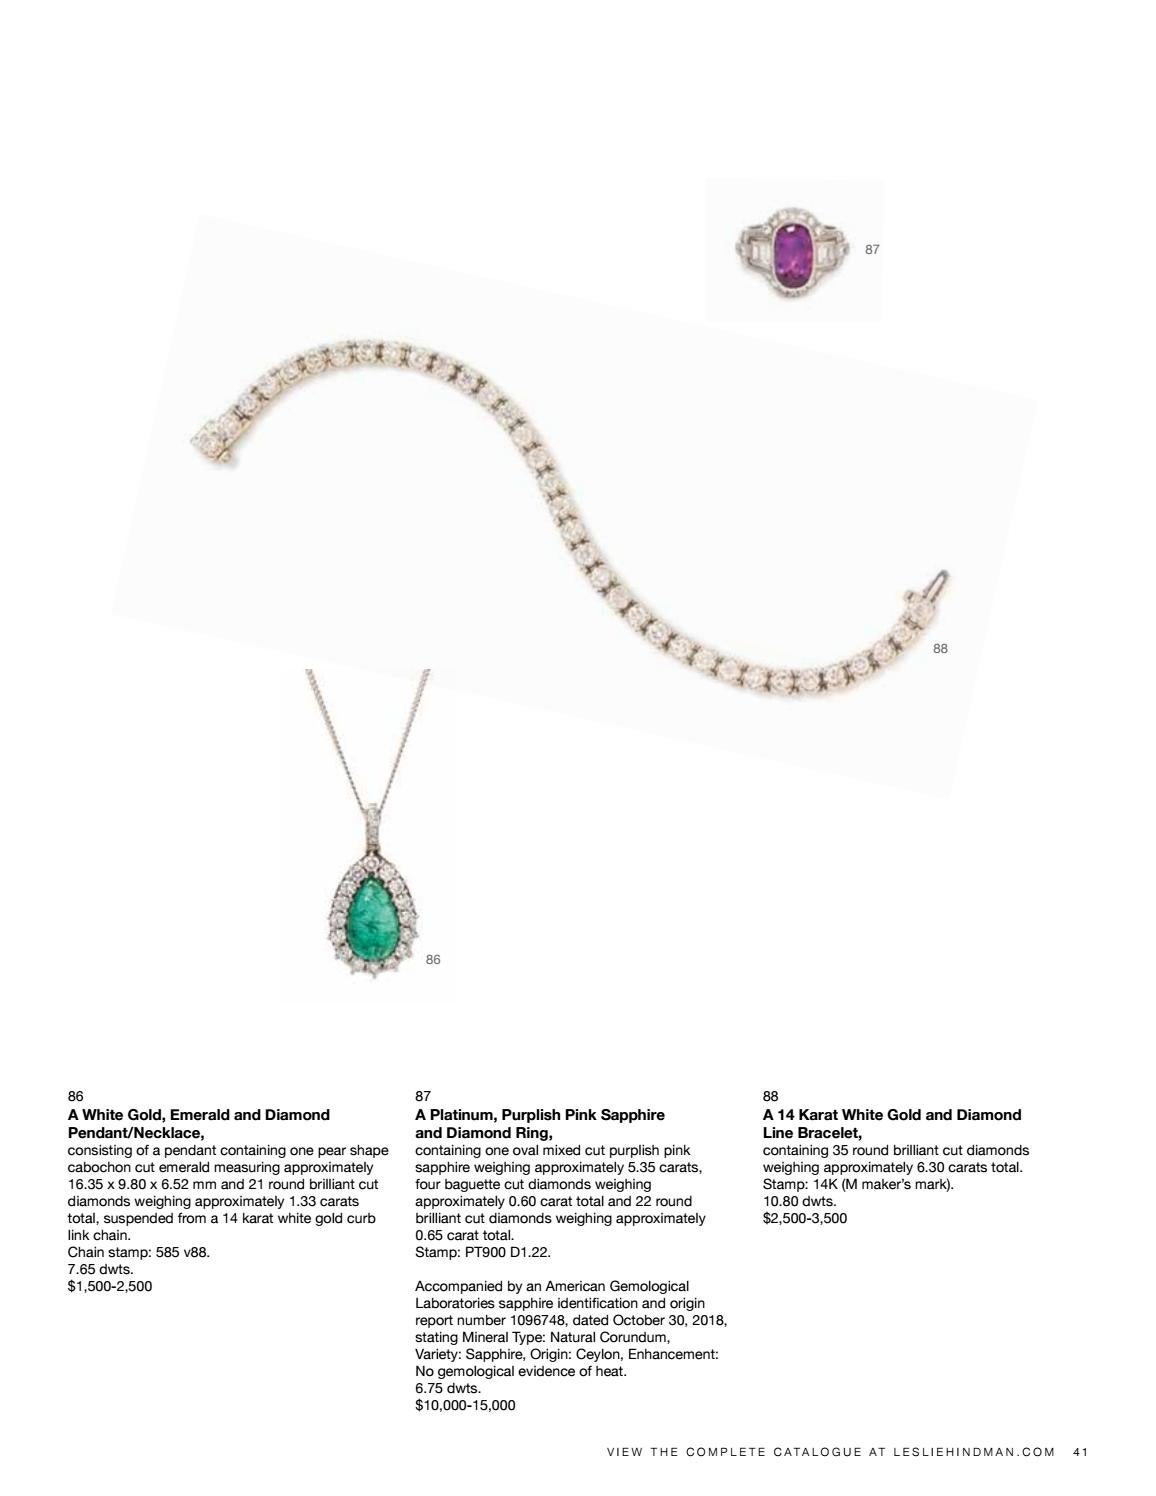 Sale 592 | Important Jewelry by Hindman - issuu